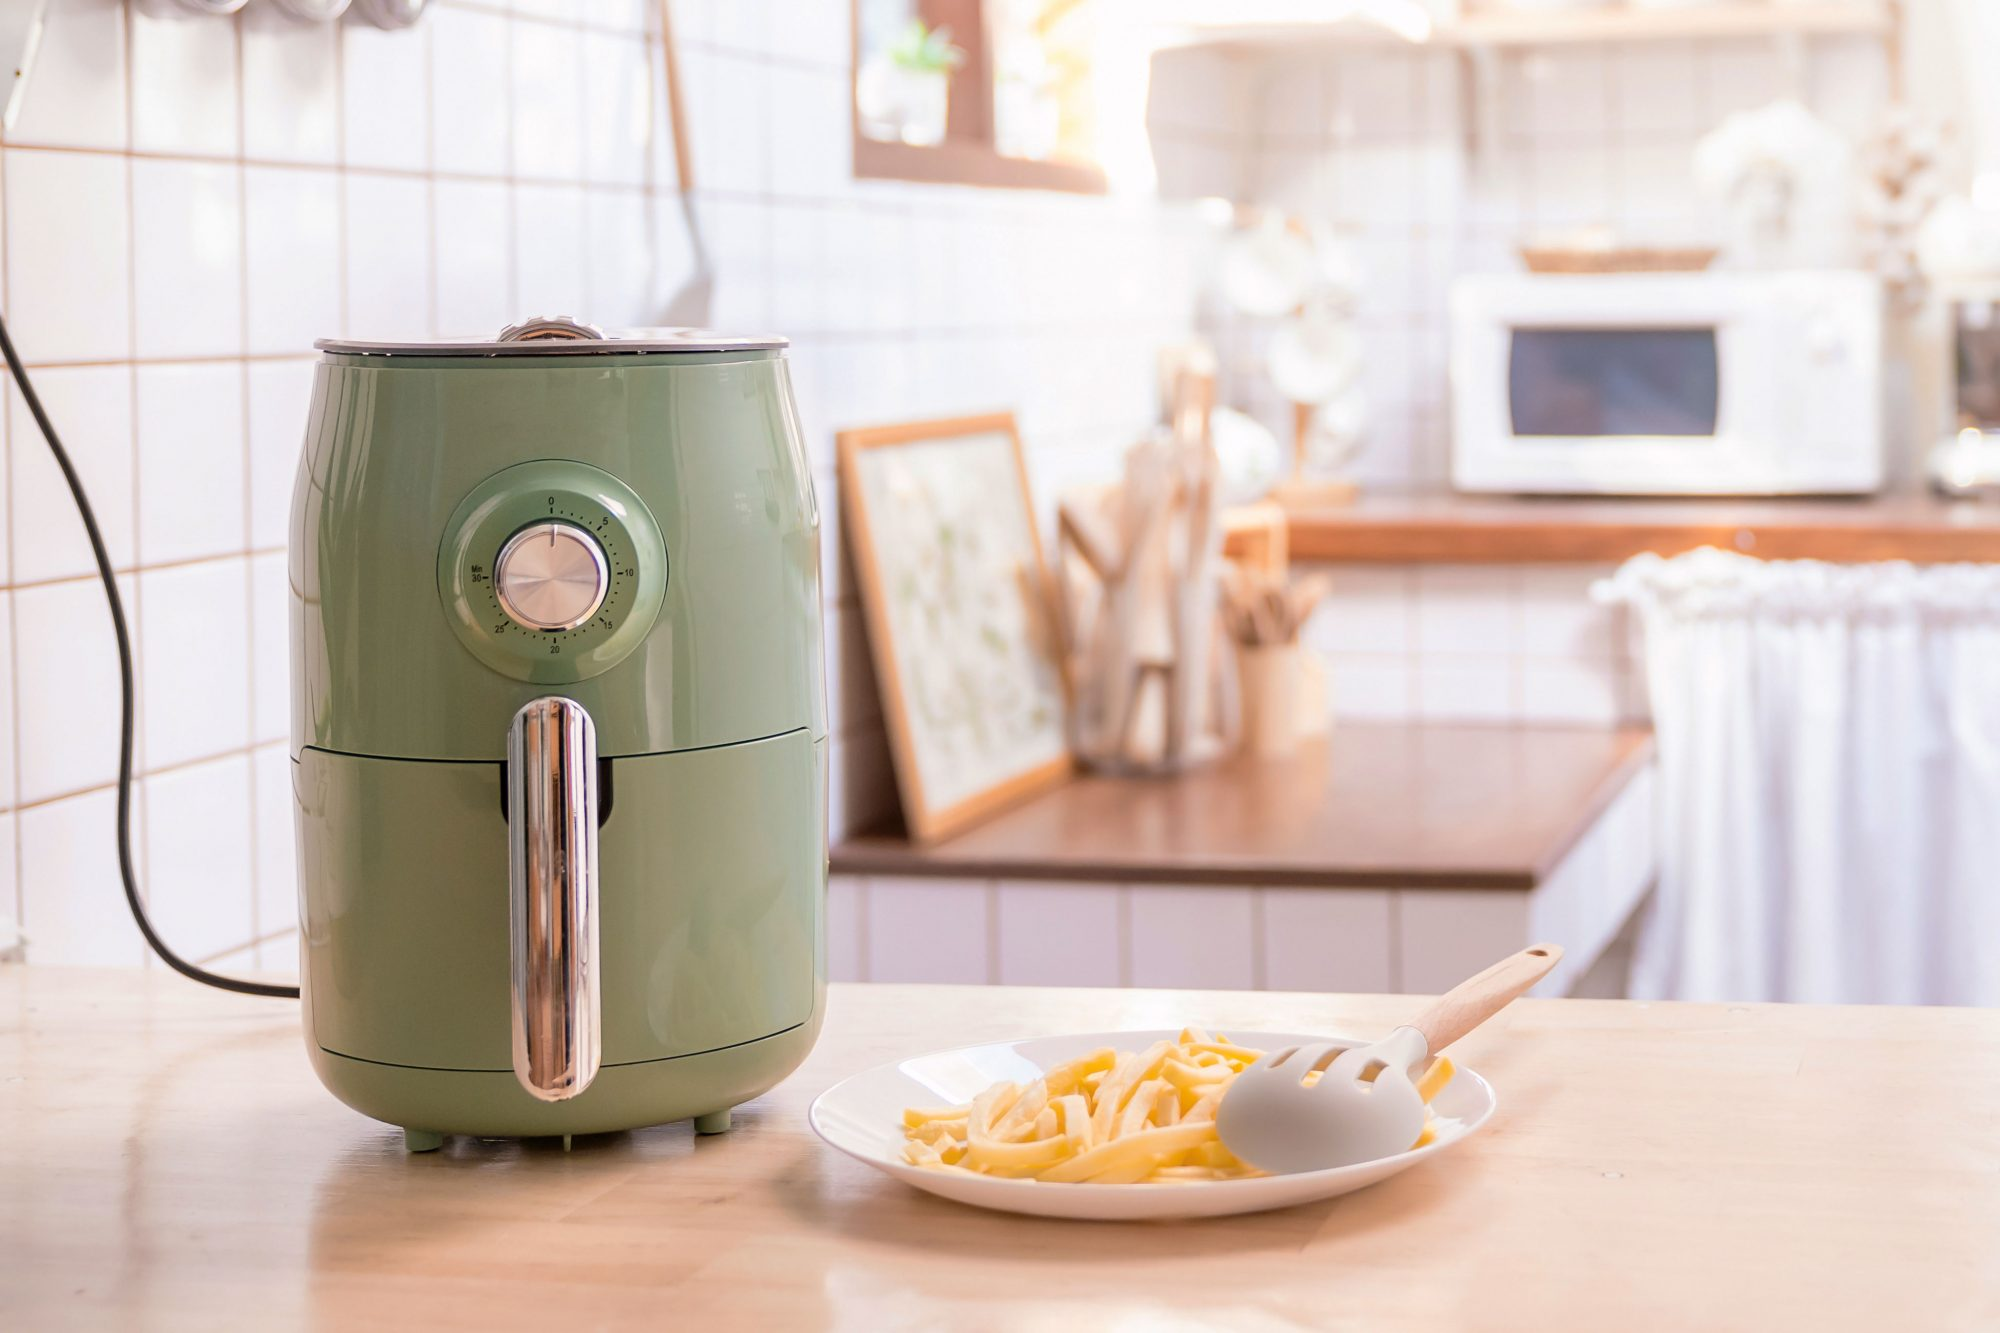 air fryer on kitchen counter